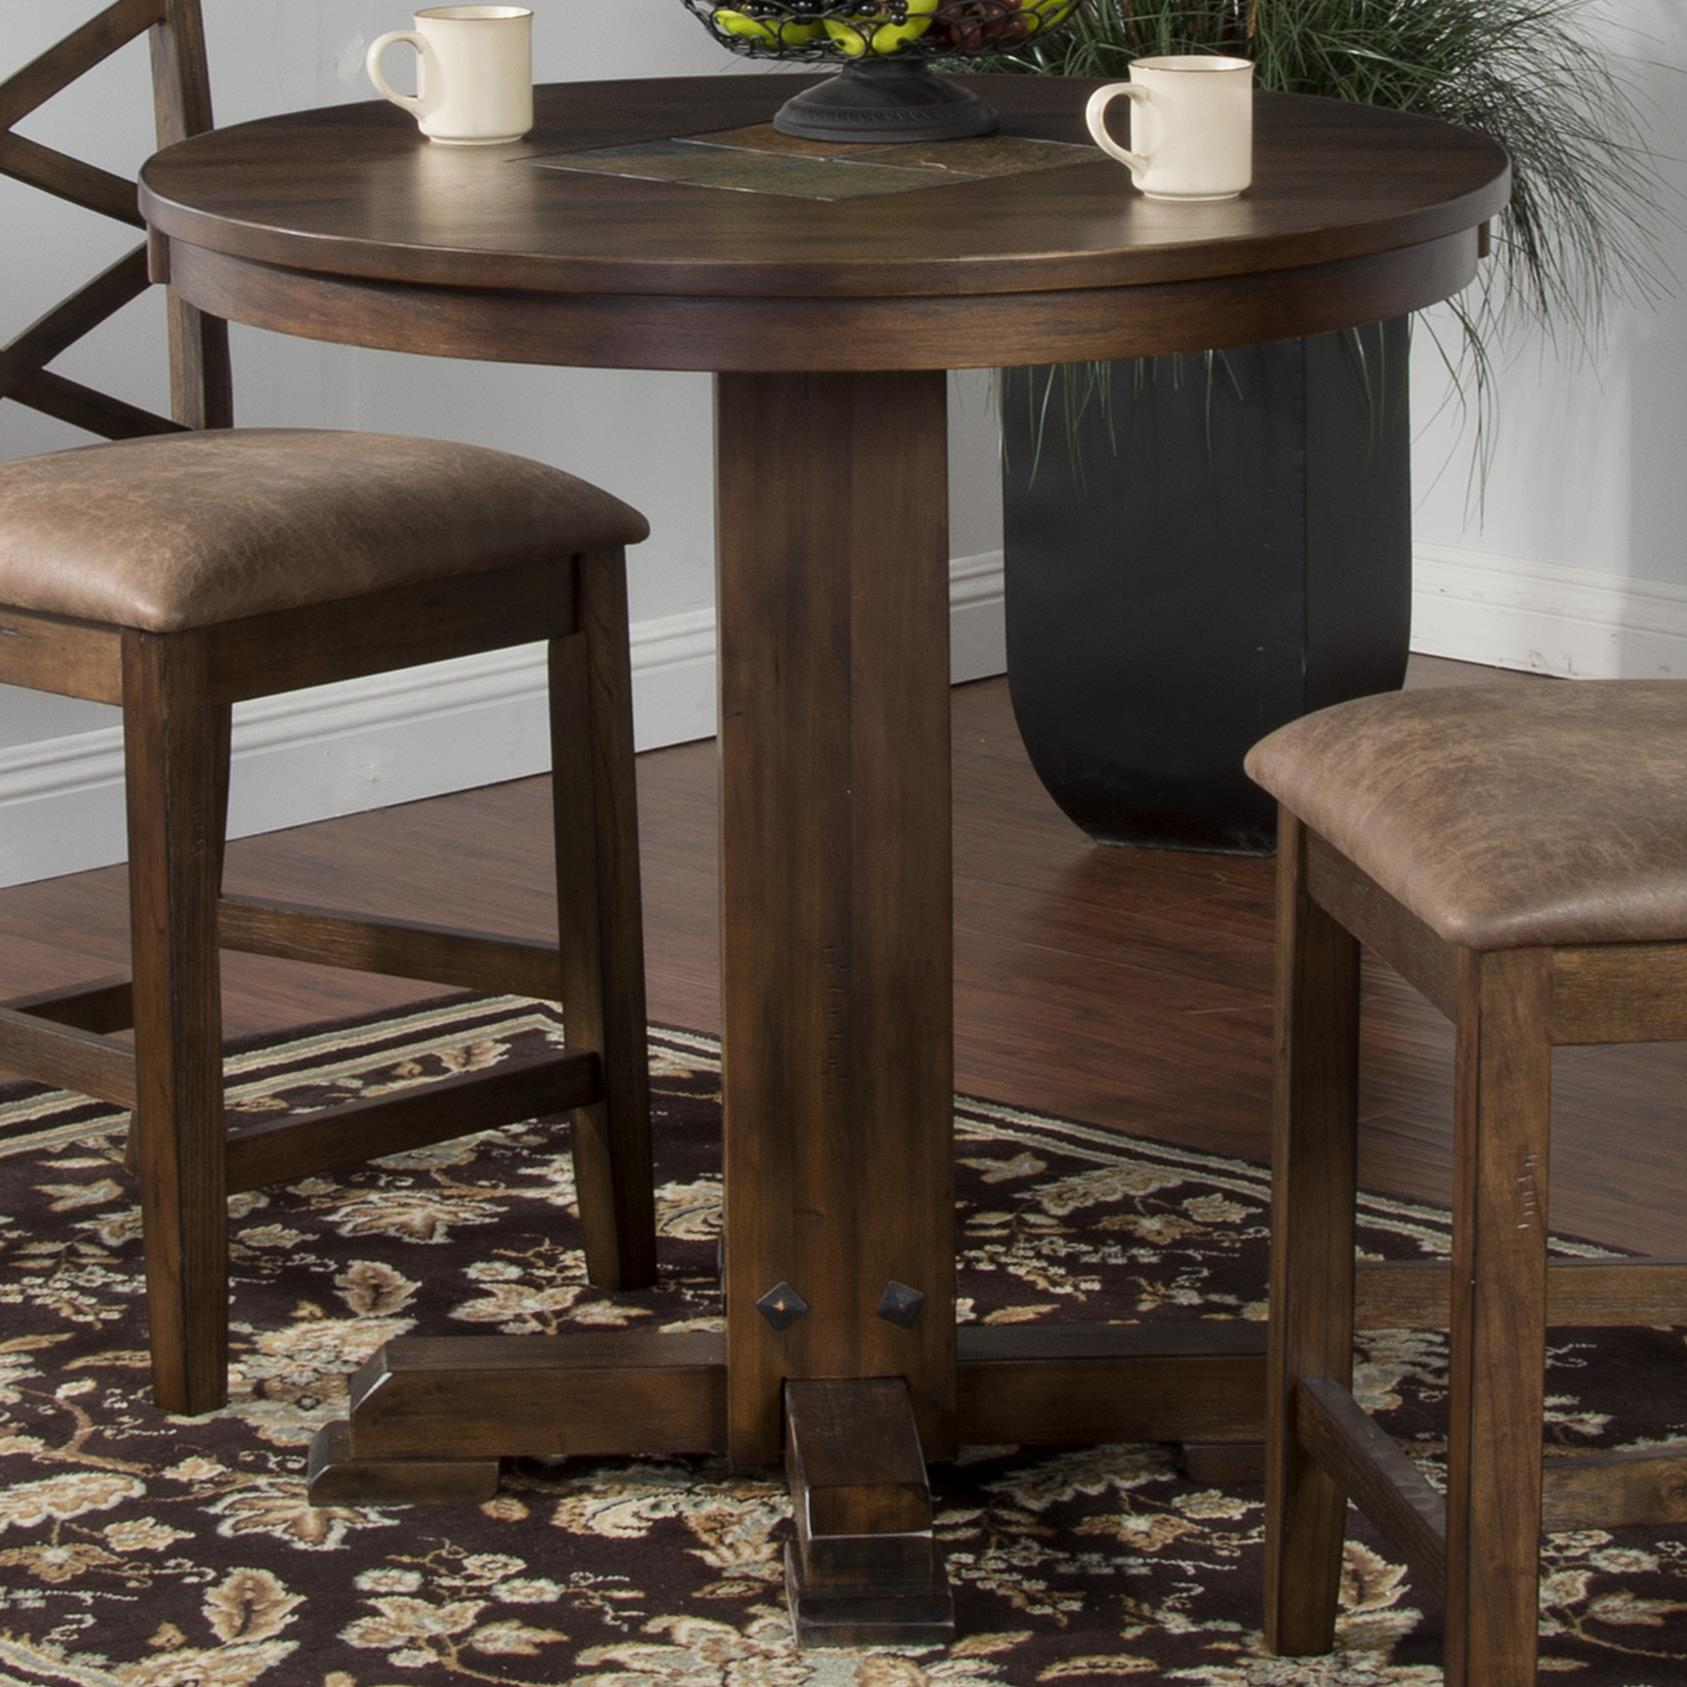 Sunny Designs Savannah Counter Bar Height Pub Table With